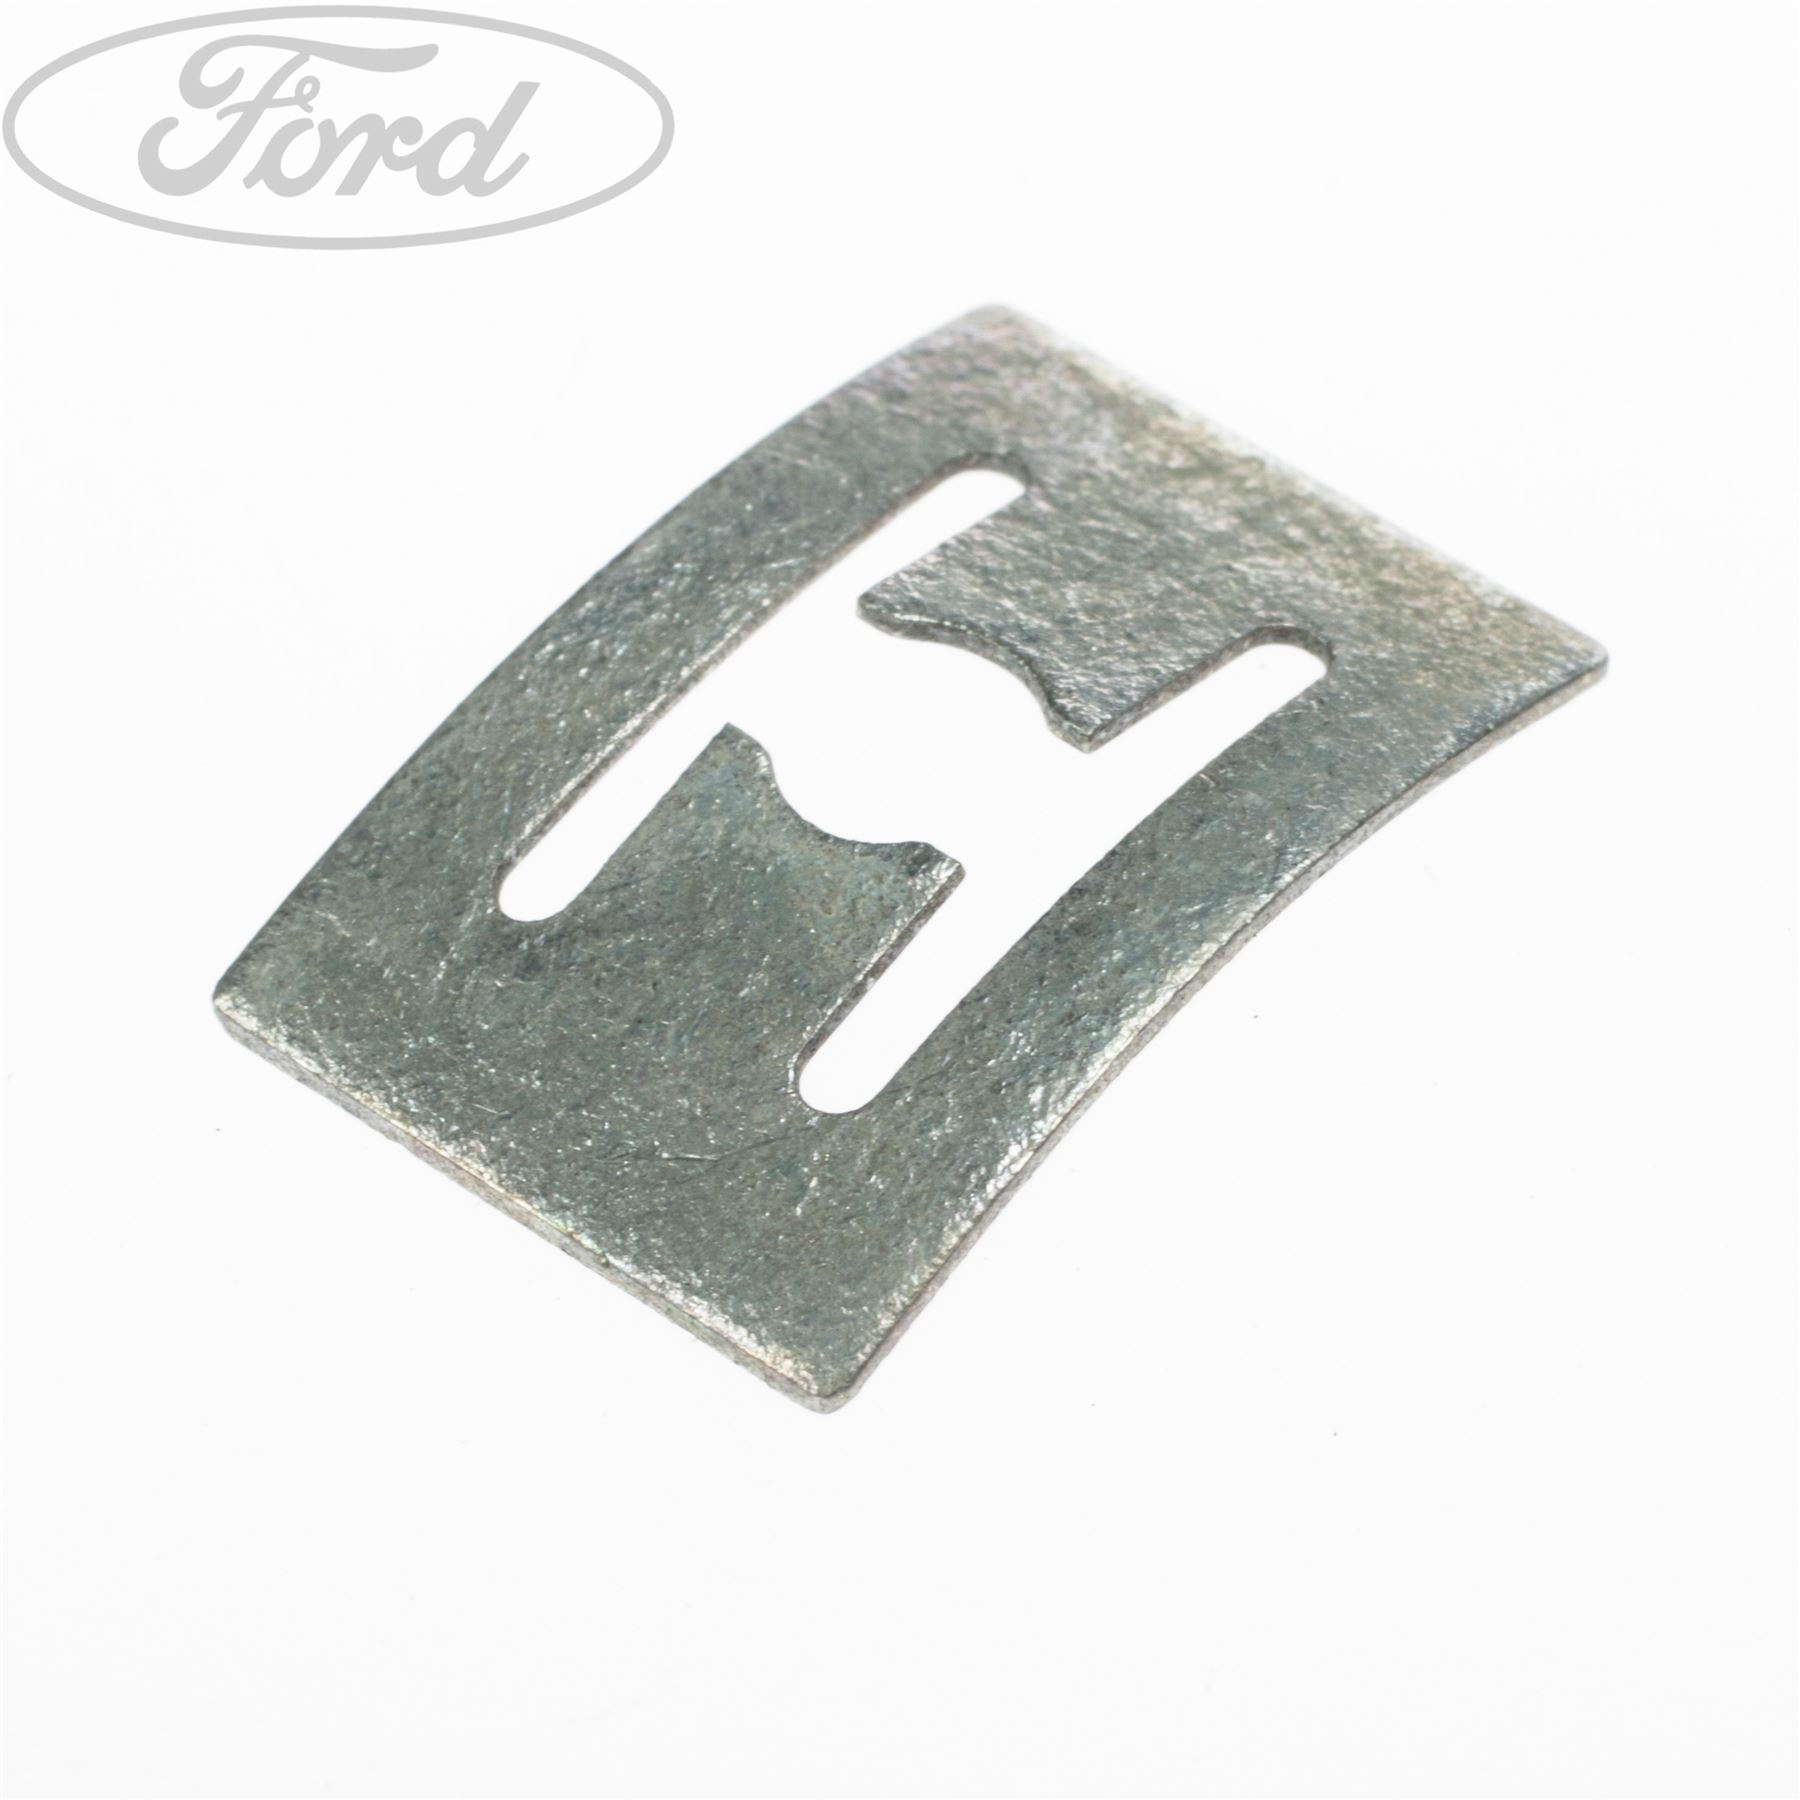 Genuine Ford Parking Brake Clip 4655596